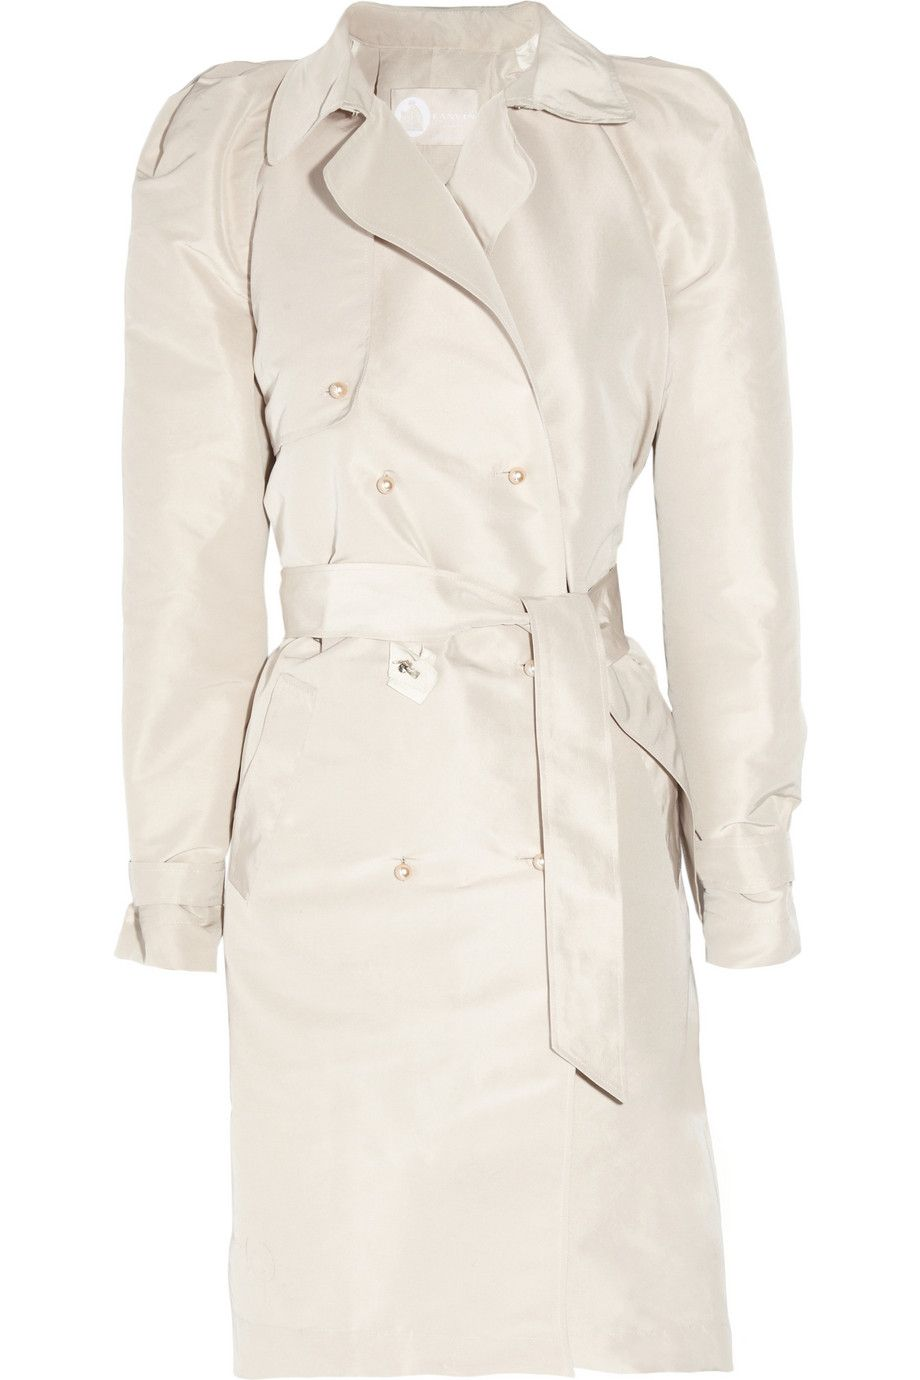 LANVIN  Embellished taffeta trench coat  £3,242.15